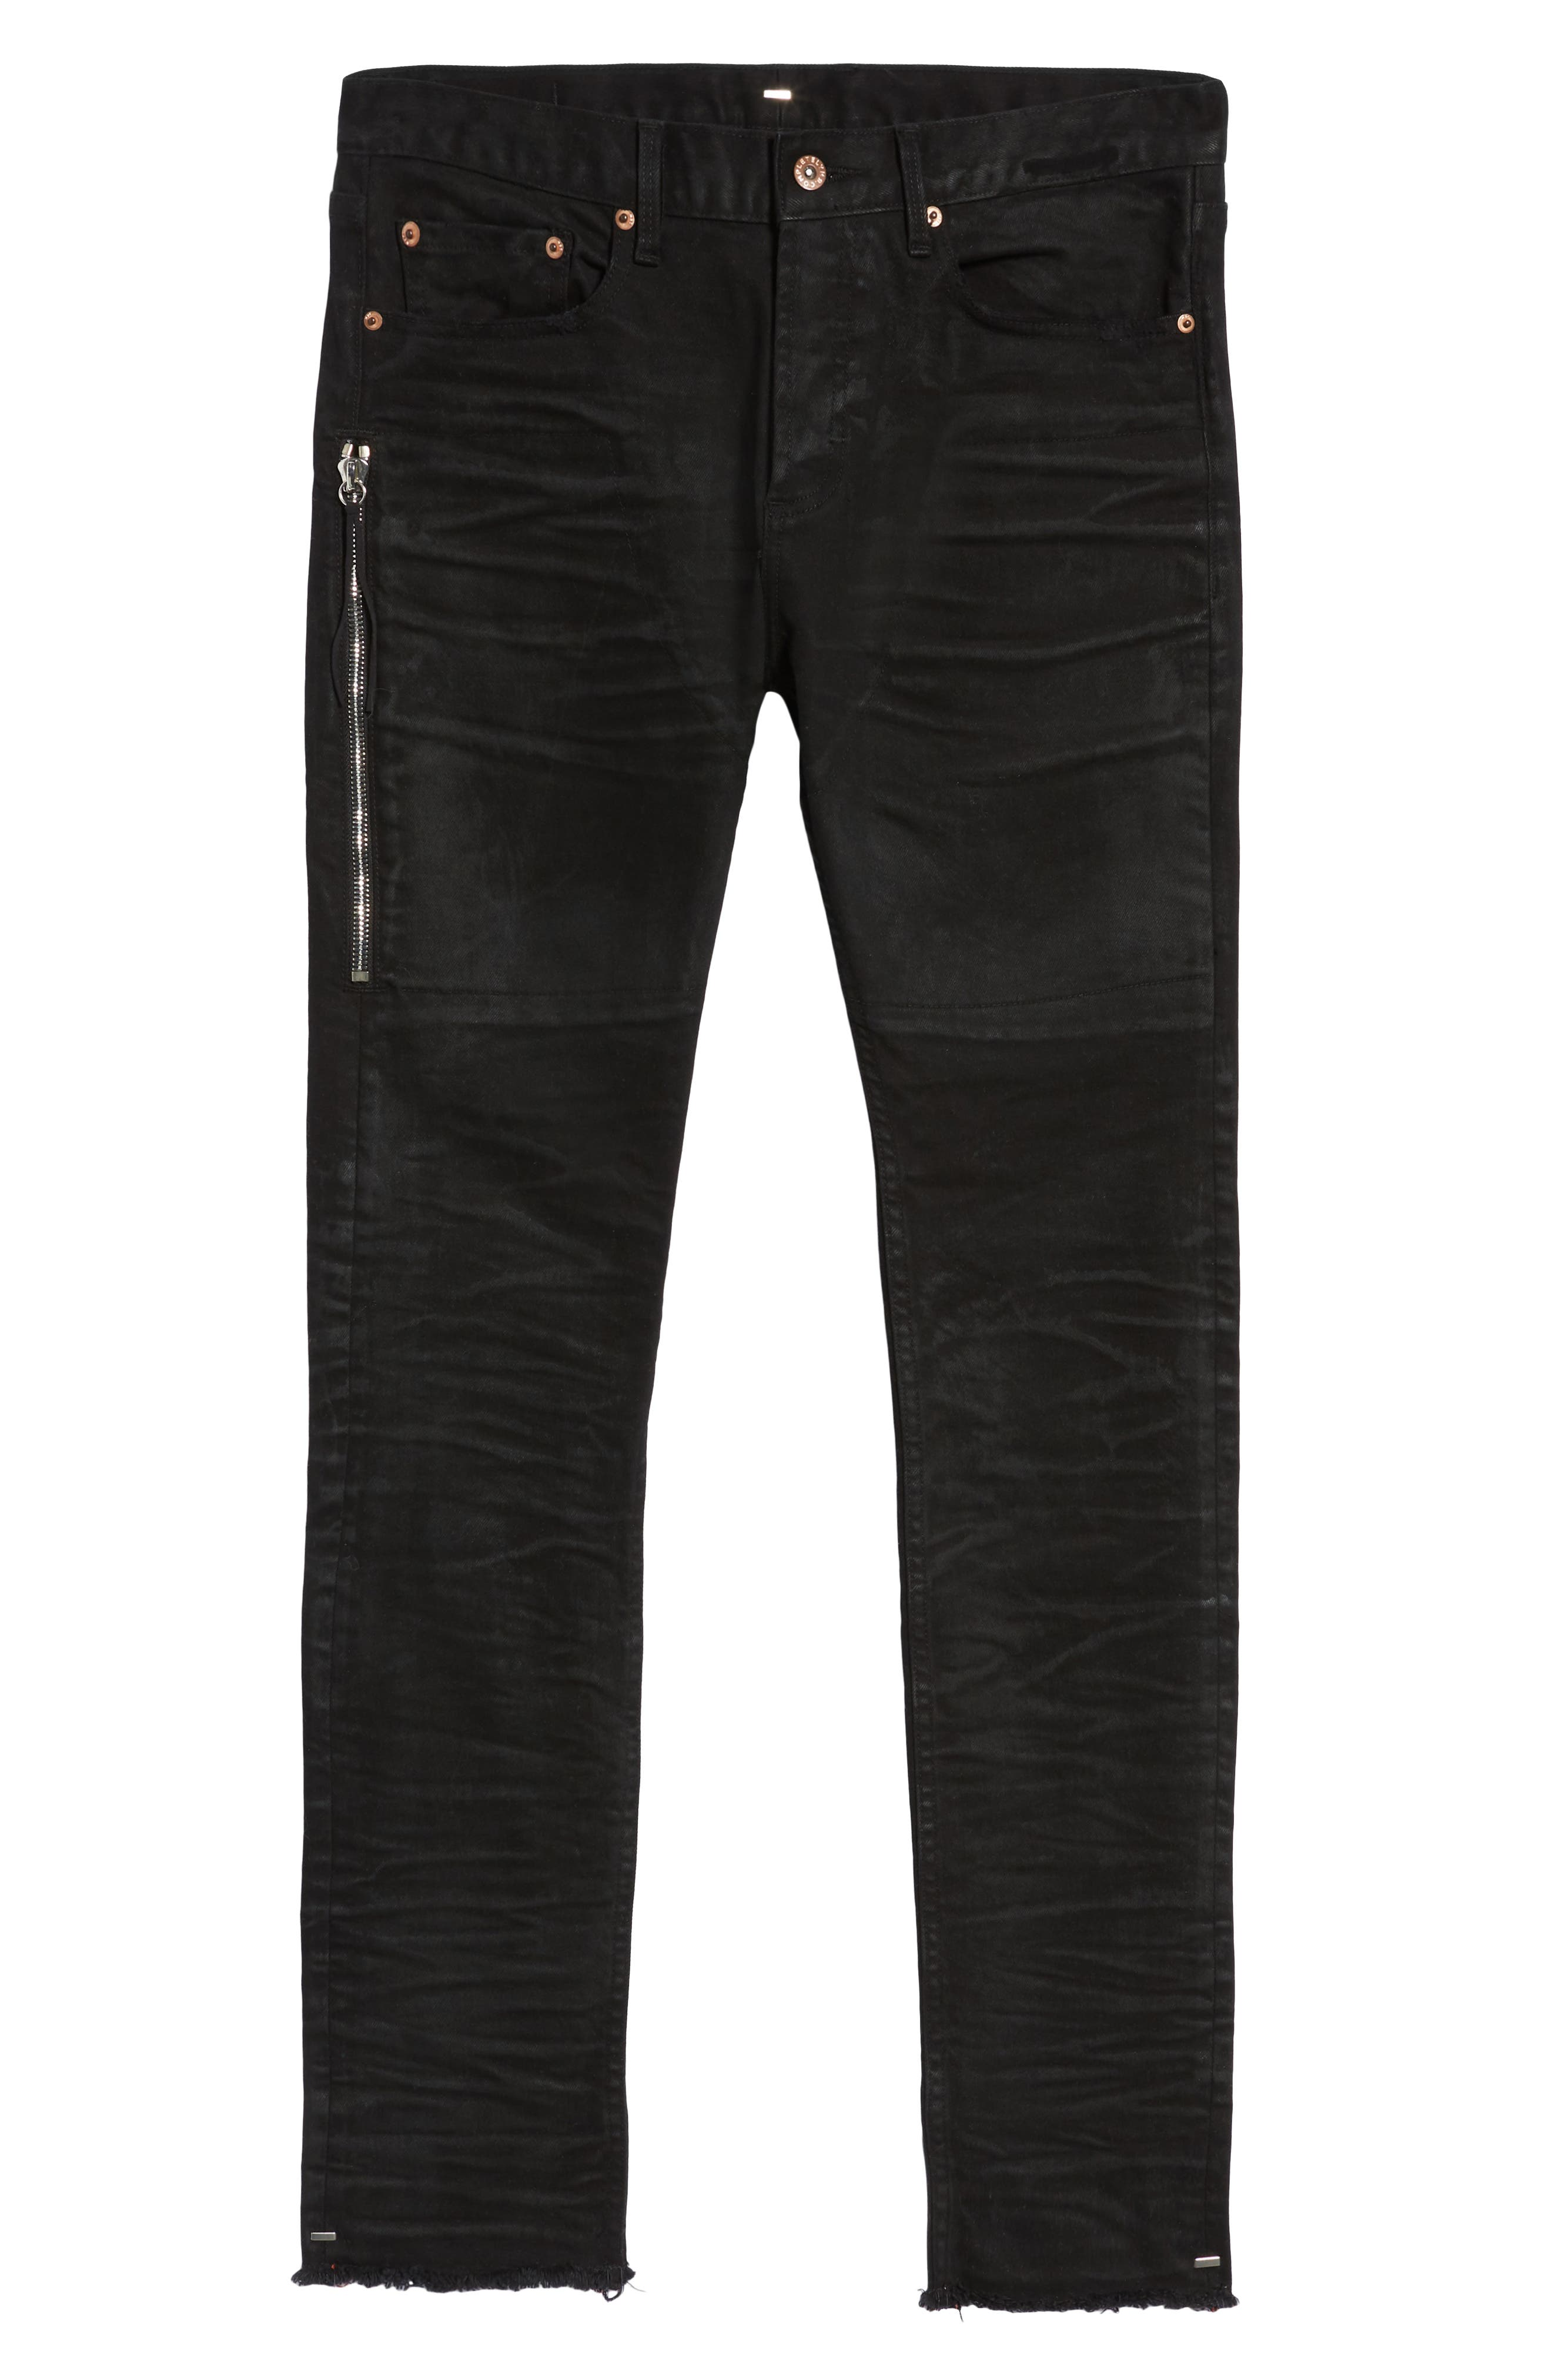 Trafford Skinny Fit Jeans,                             Alternate thumbnail 6, color,                             HERITAGE WAX